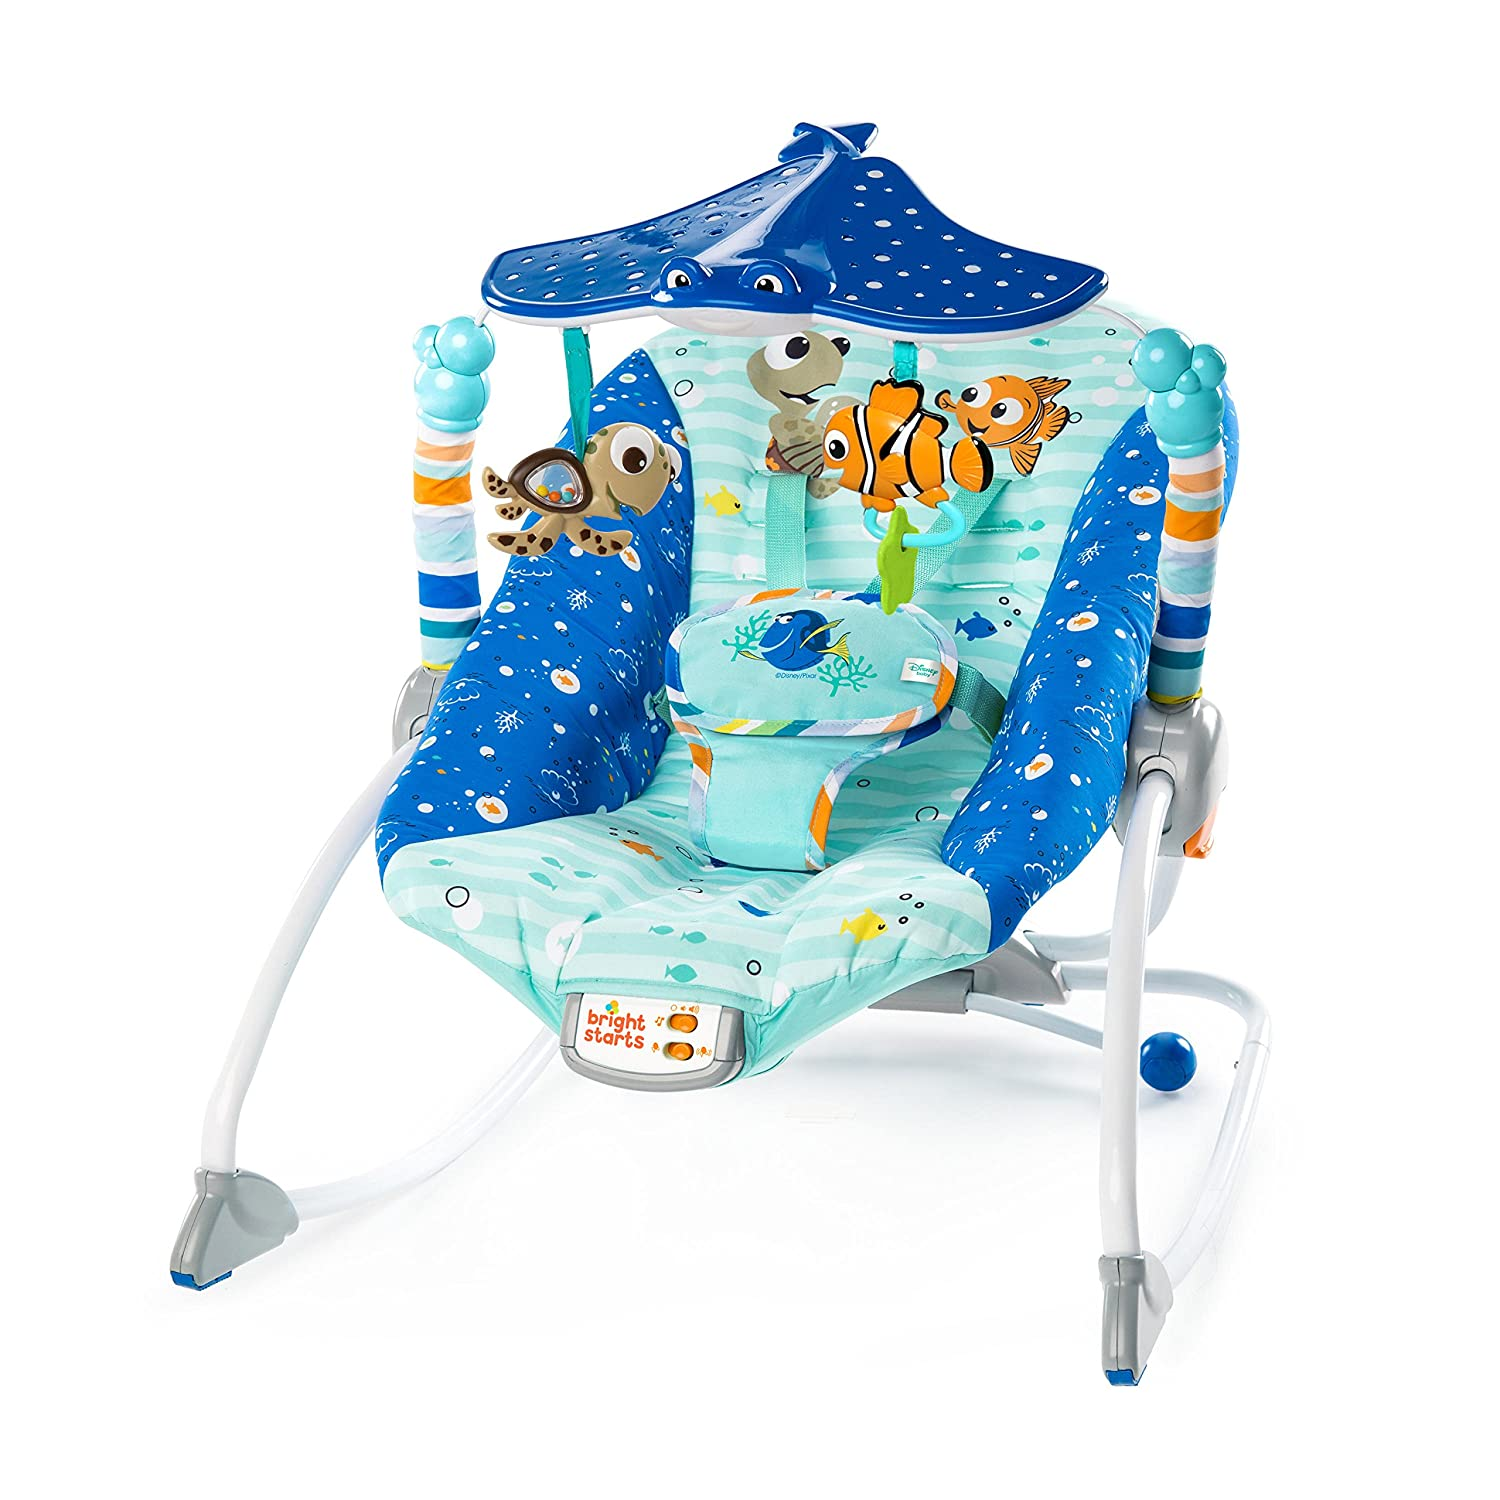 Disney Baby FINDING NEMO Explore the Sea Infant to Toddler Rocker Kids II - (Carson CA) 11199-3